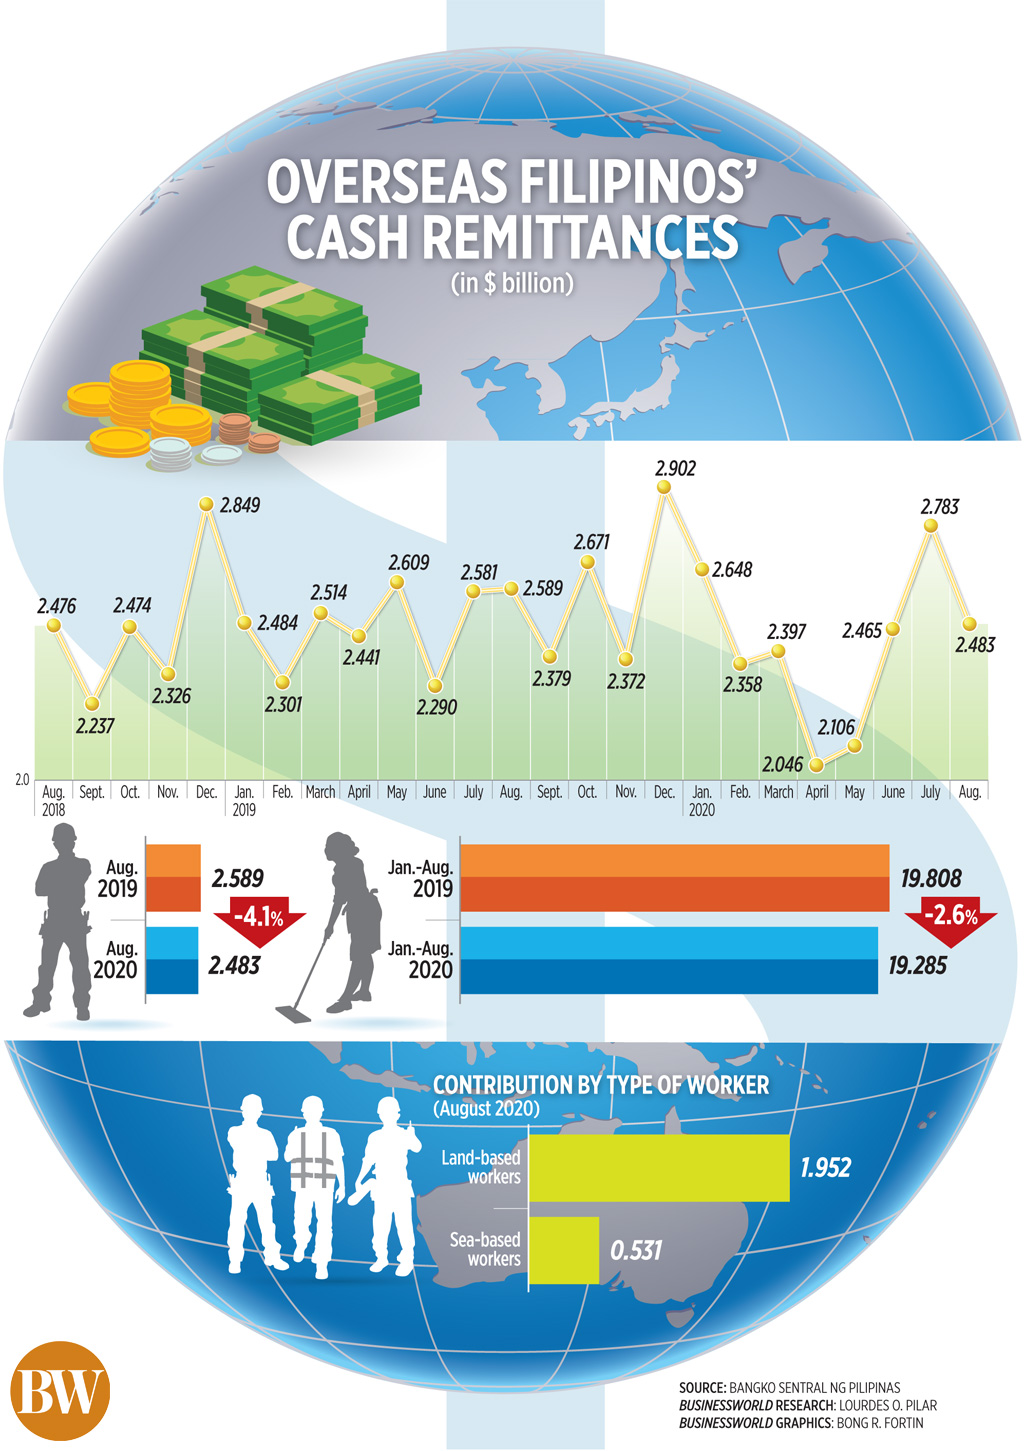 50488567997 b19ef4d2d3 o - Overseas Filipinos' cash remittances (Aug. 2020)